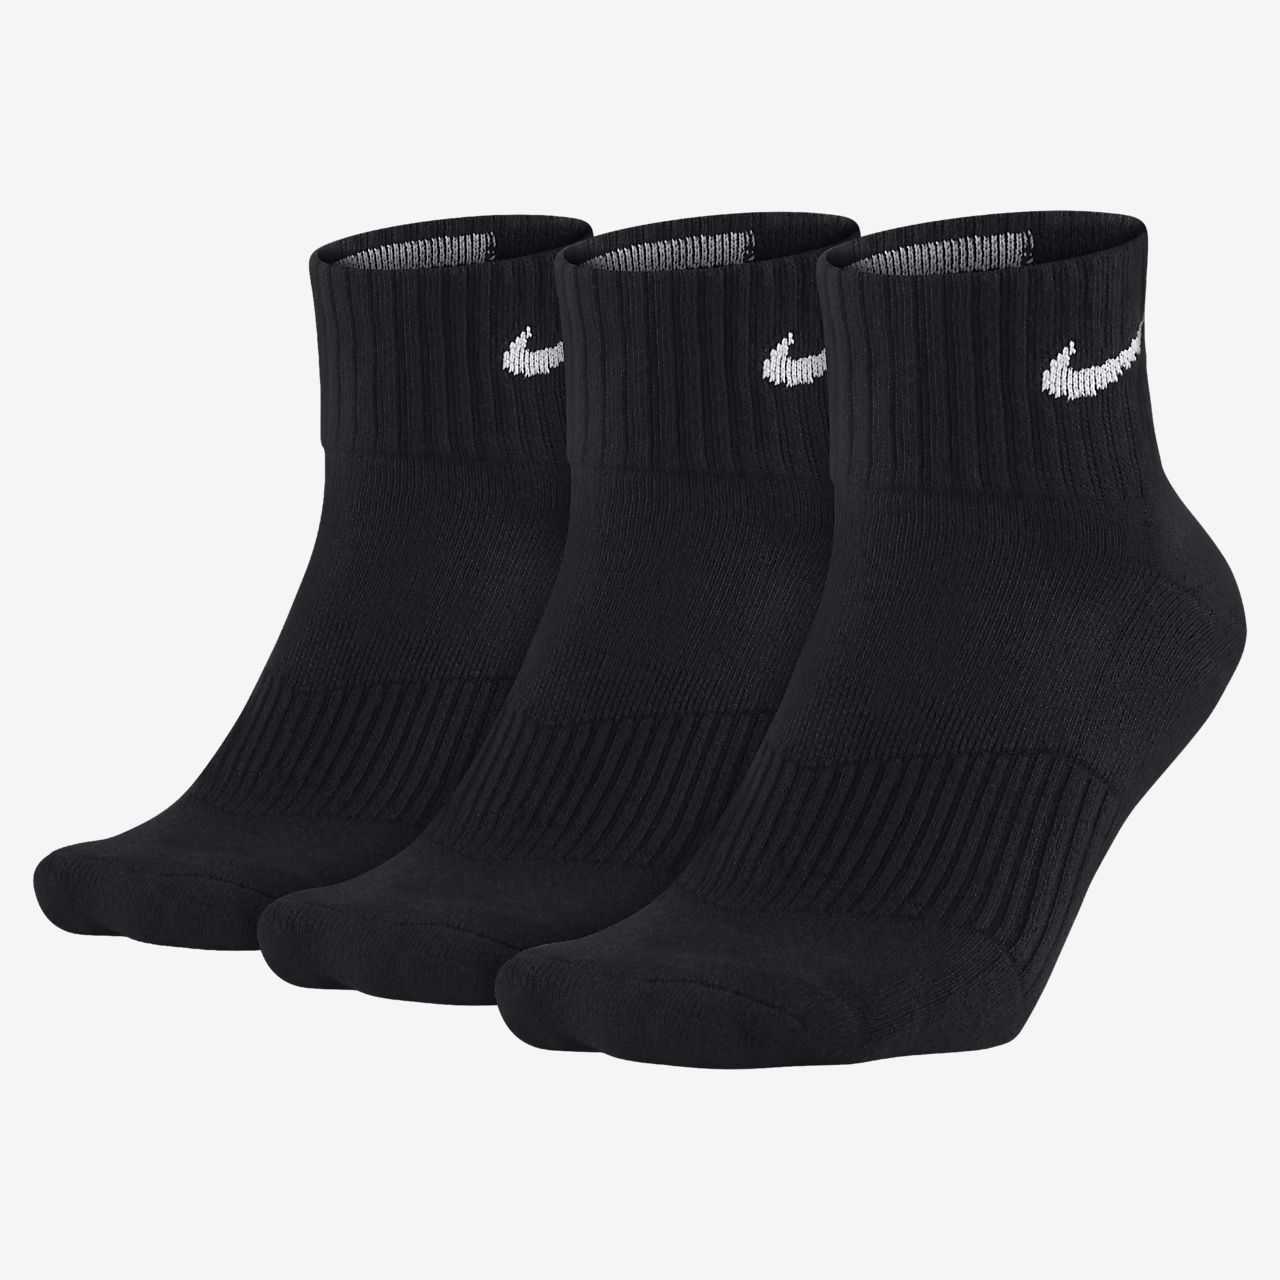 Nike Cotton Cushion Quarter Sokken (3 paar)